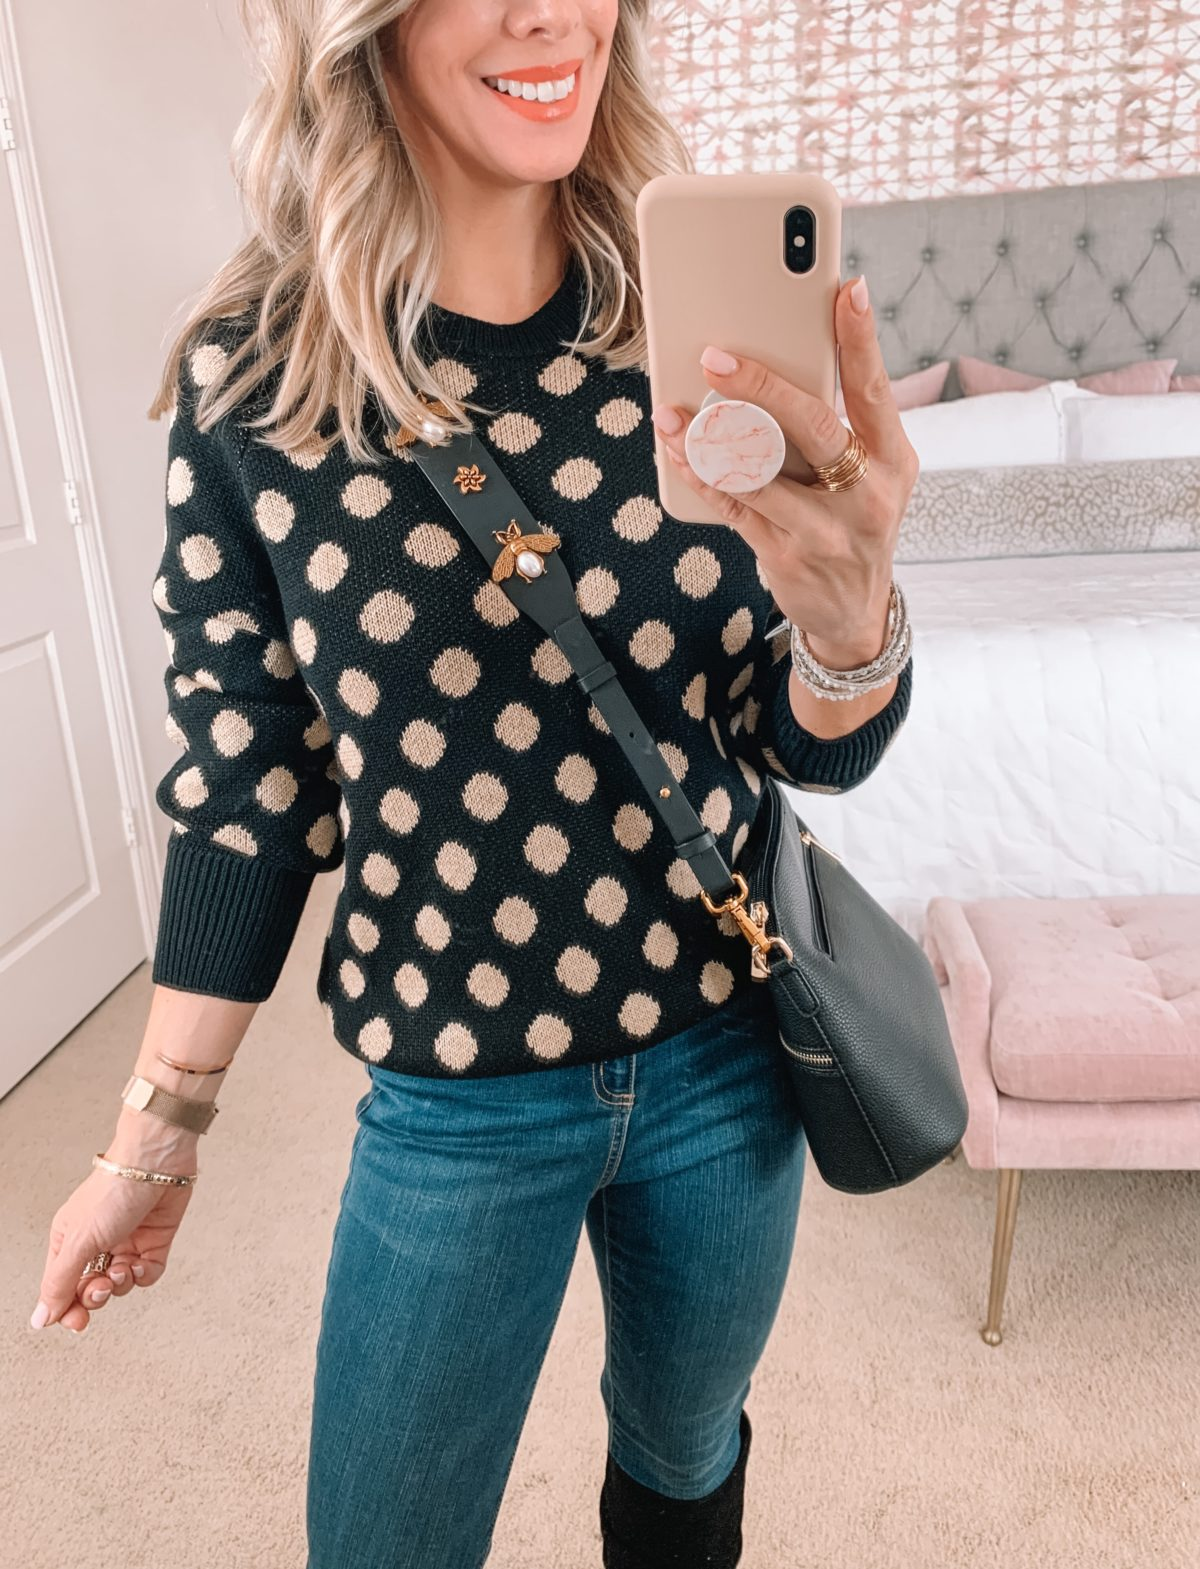 Amazon Fashion Faves, Polka Dot Sweater, Jeans, Boots, Crossbody Bag